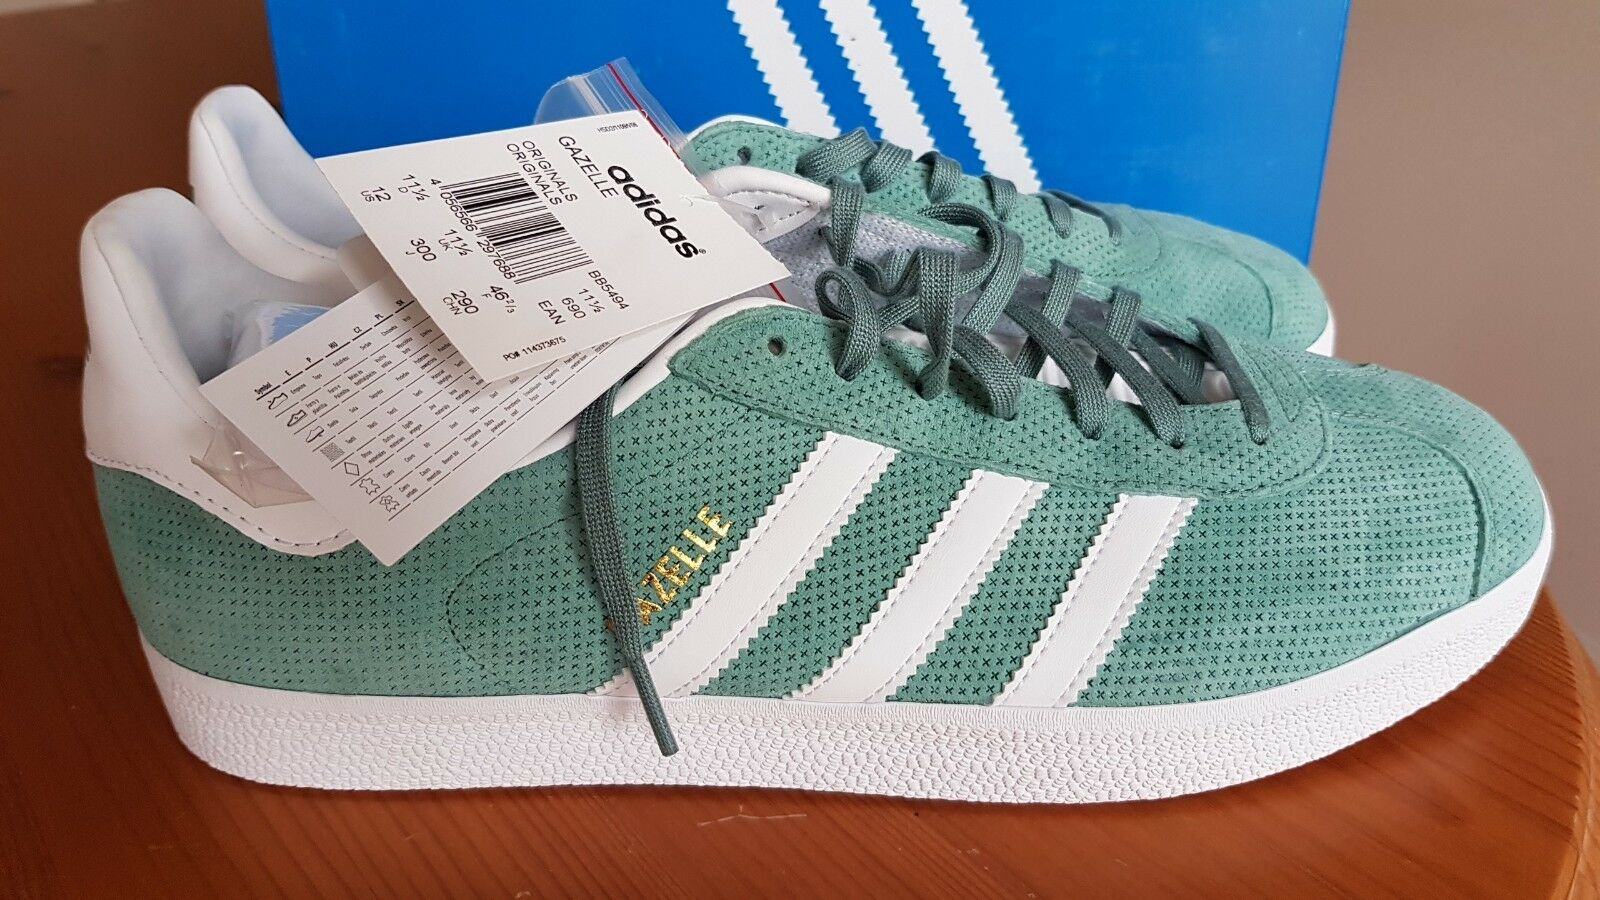 ADIDAS ORIGINALS GAZELLE Homme Taille 12 1 2 (EUR 48) BNWT Brand New in Box